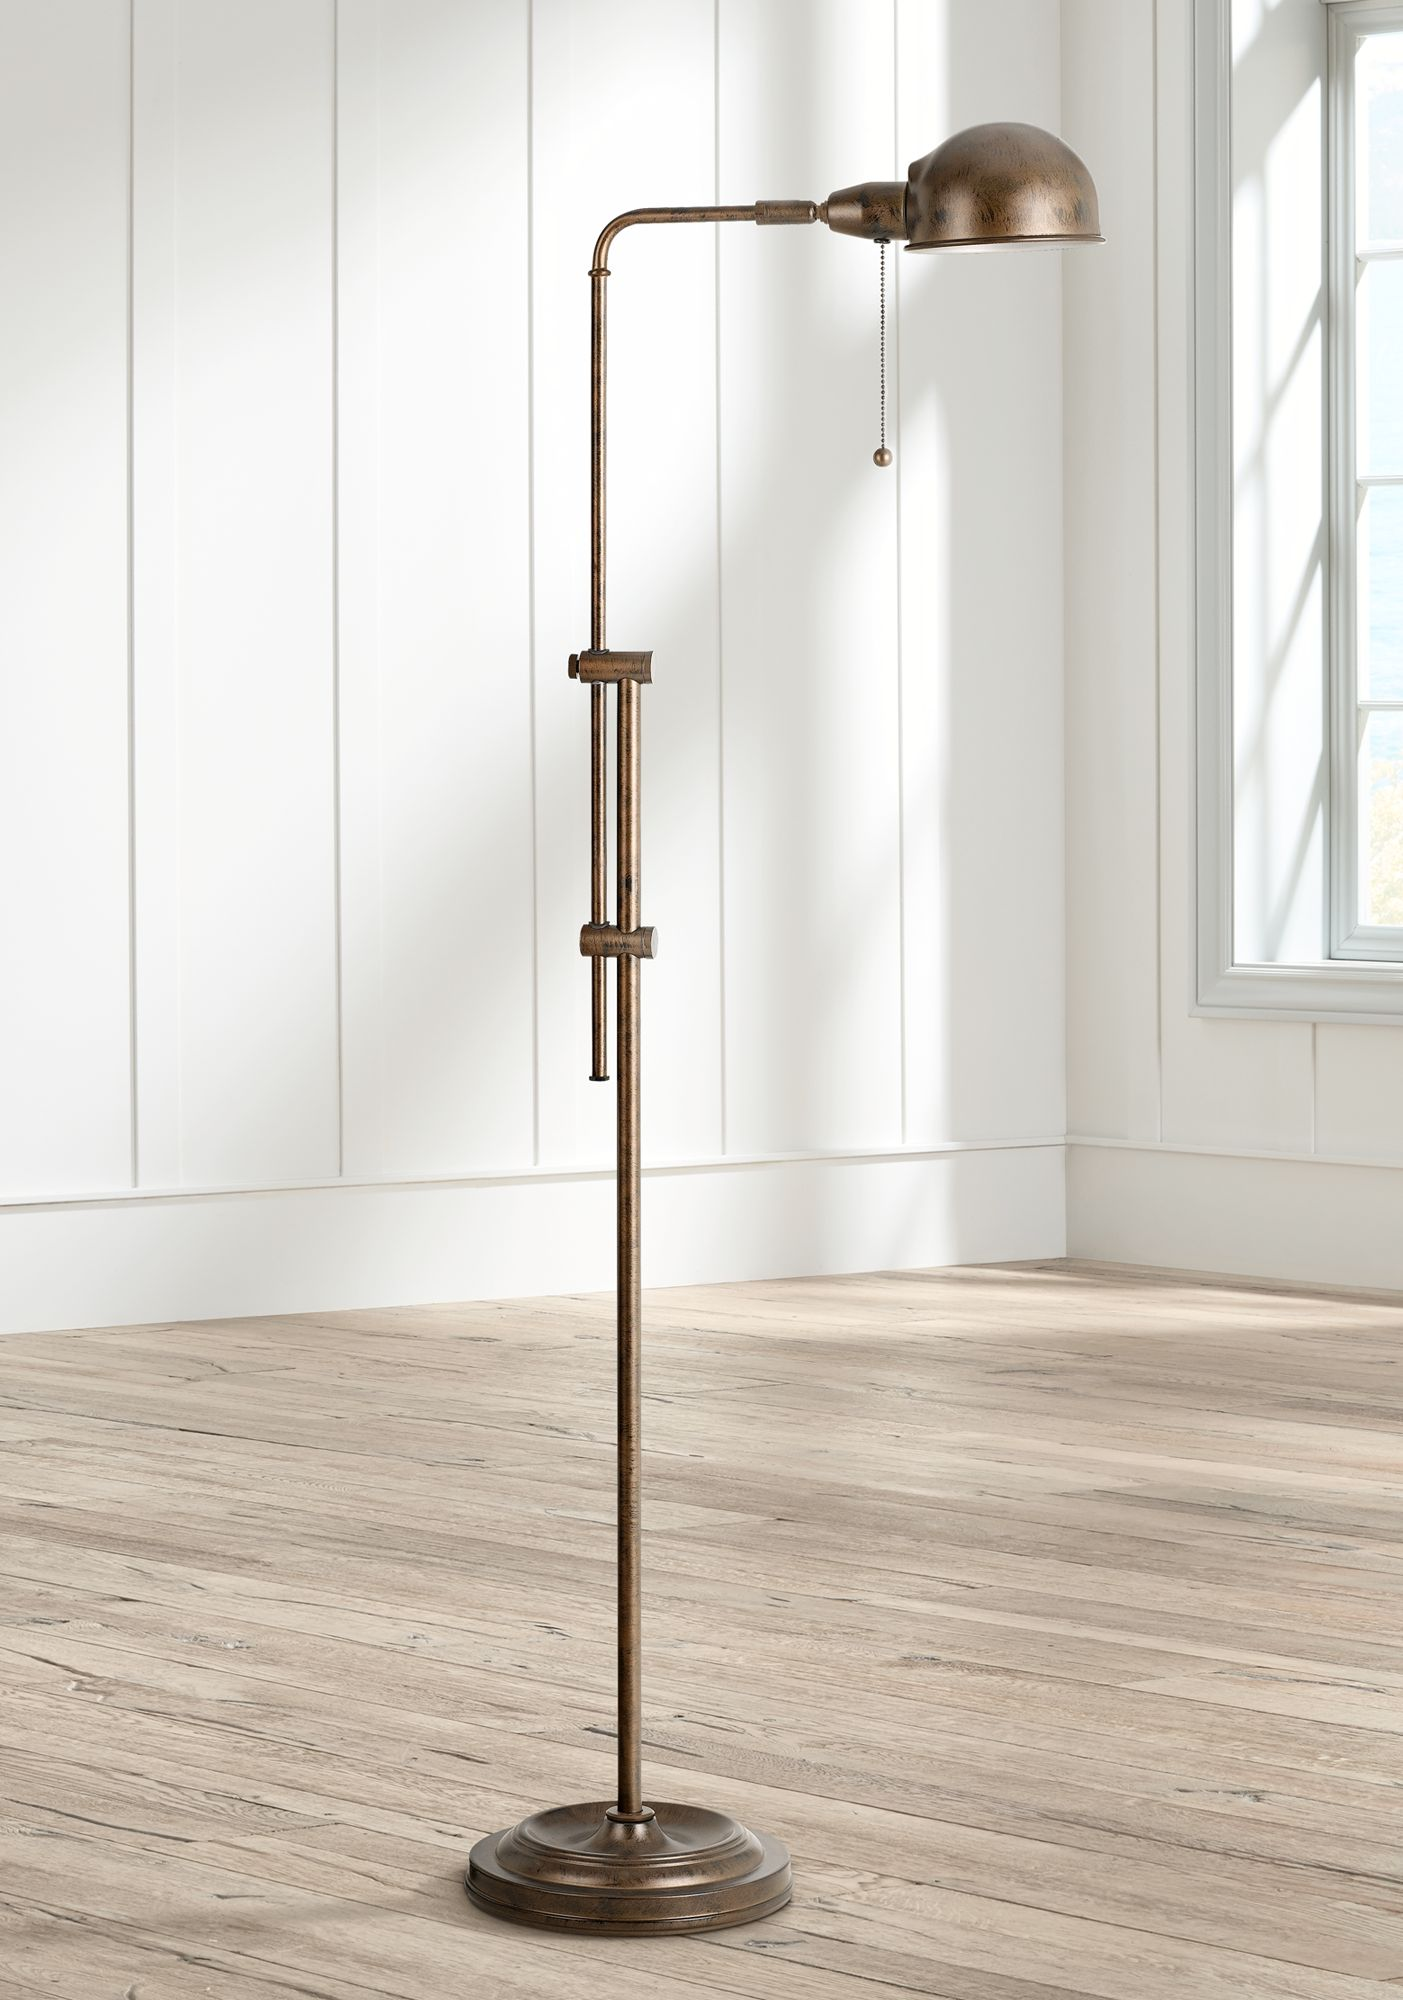 Tamber Rust Adjustable Pharmacy Floor Lamp